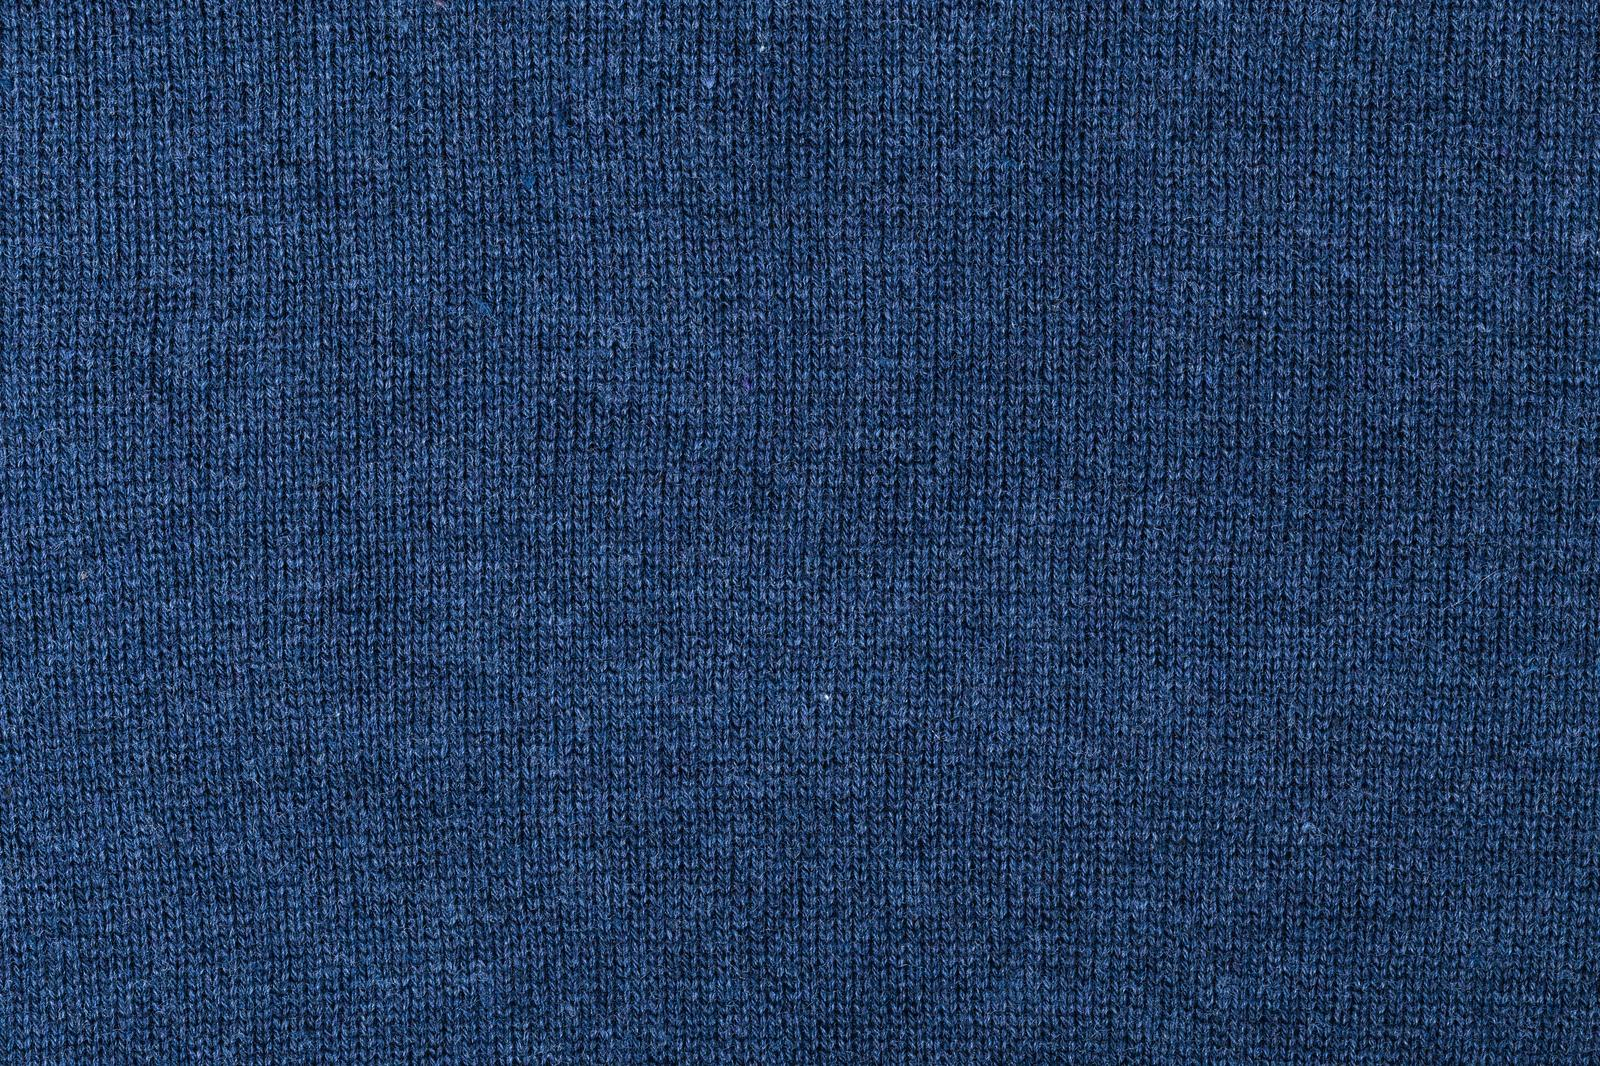 manufacture of knitted and crocheted pullovers, cardigans, etc. in Estonia